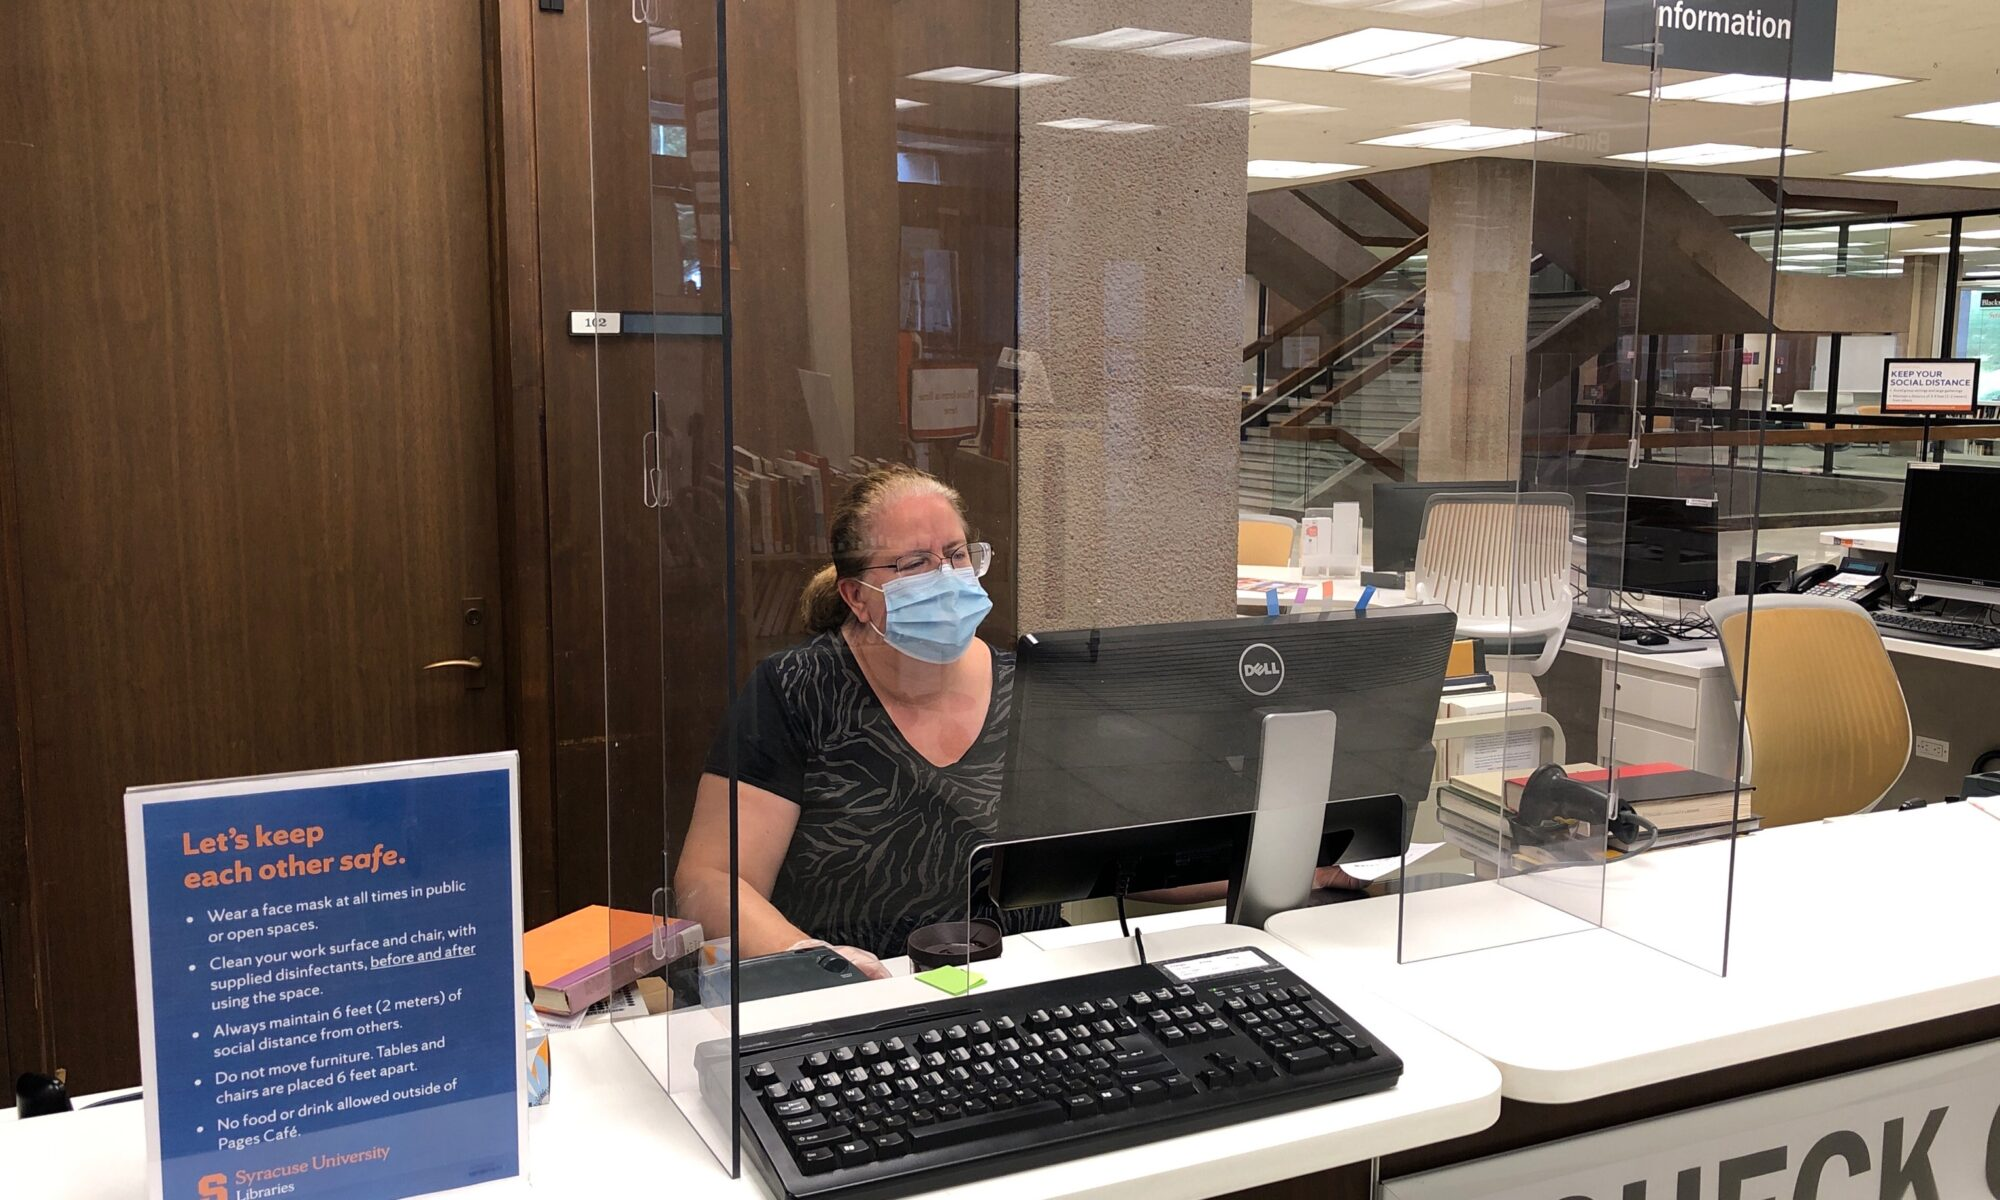 person with face mask sitting behind plexiglass check out desk at library